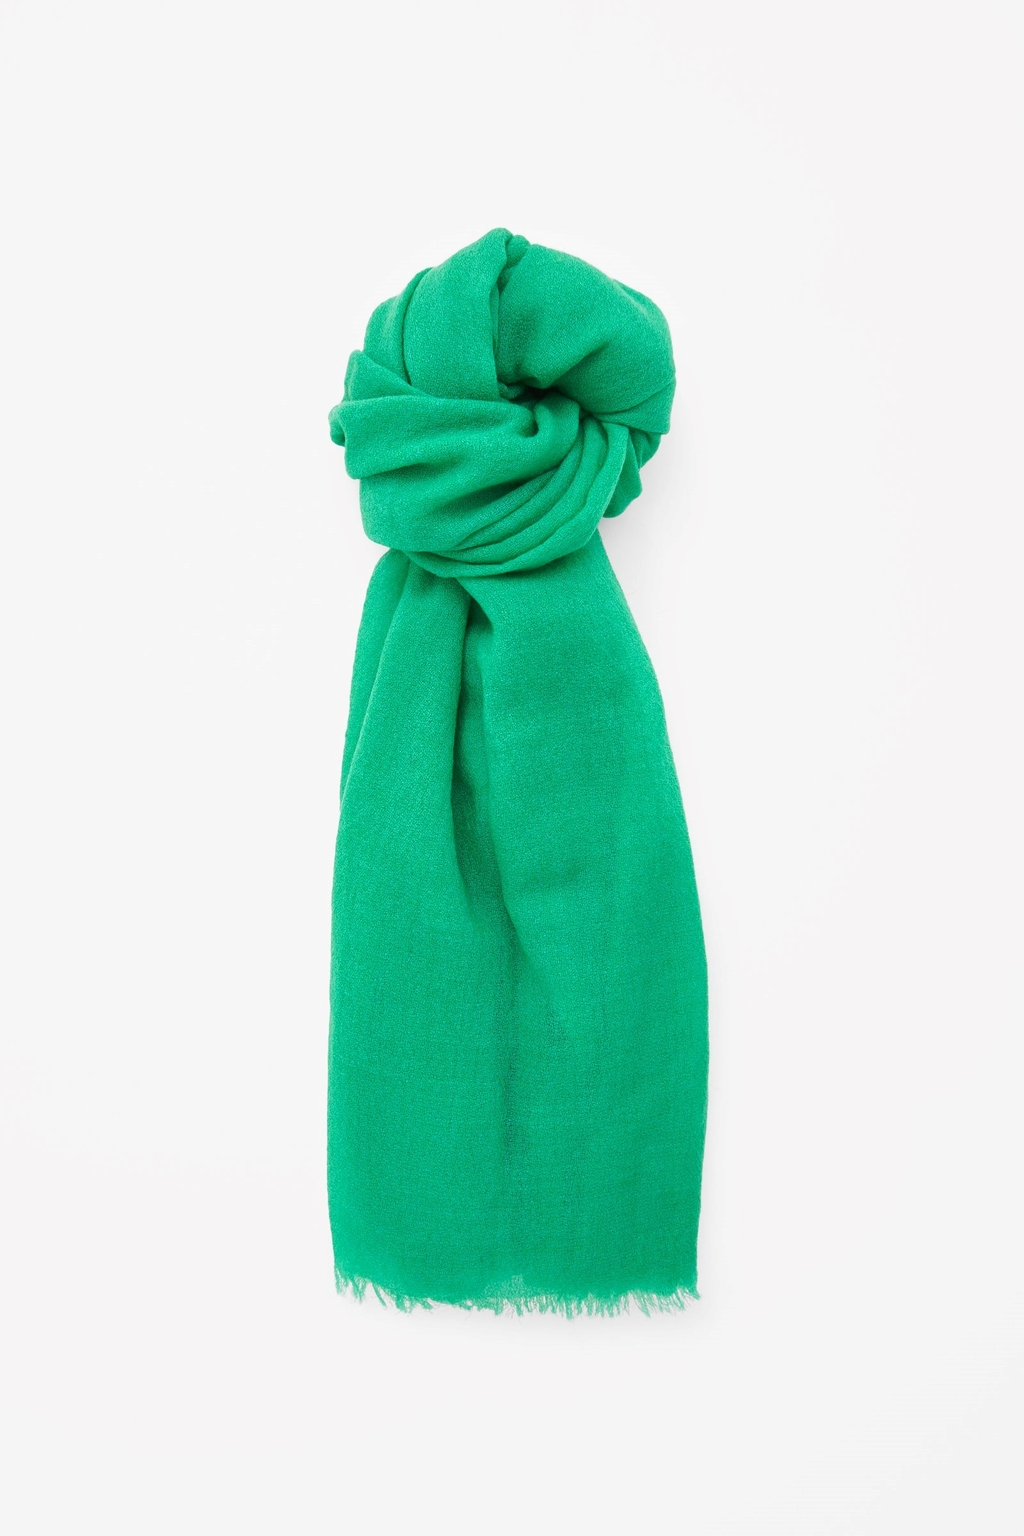 Fine Wool Scarf - predominant colour: emerald green; occasions: casual, evening, creative work; type of pattern: standard; style: regular; size: standard; material: fabric; pattern: plain; season: s/s 2015; wardrobe: highlight